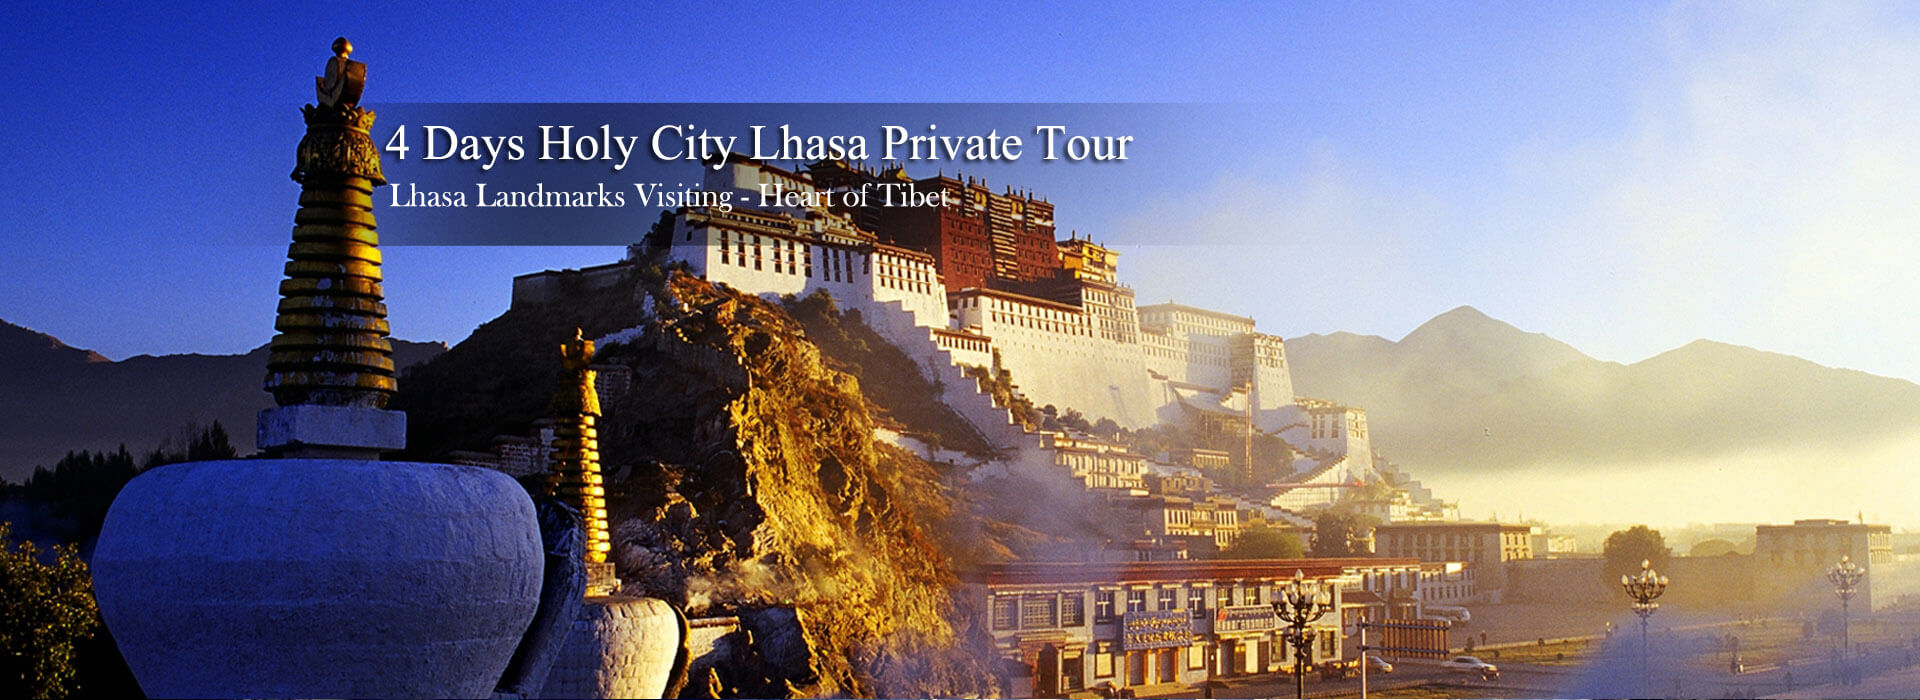 Tibet Travel Agency